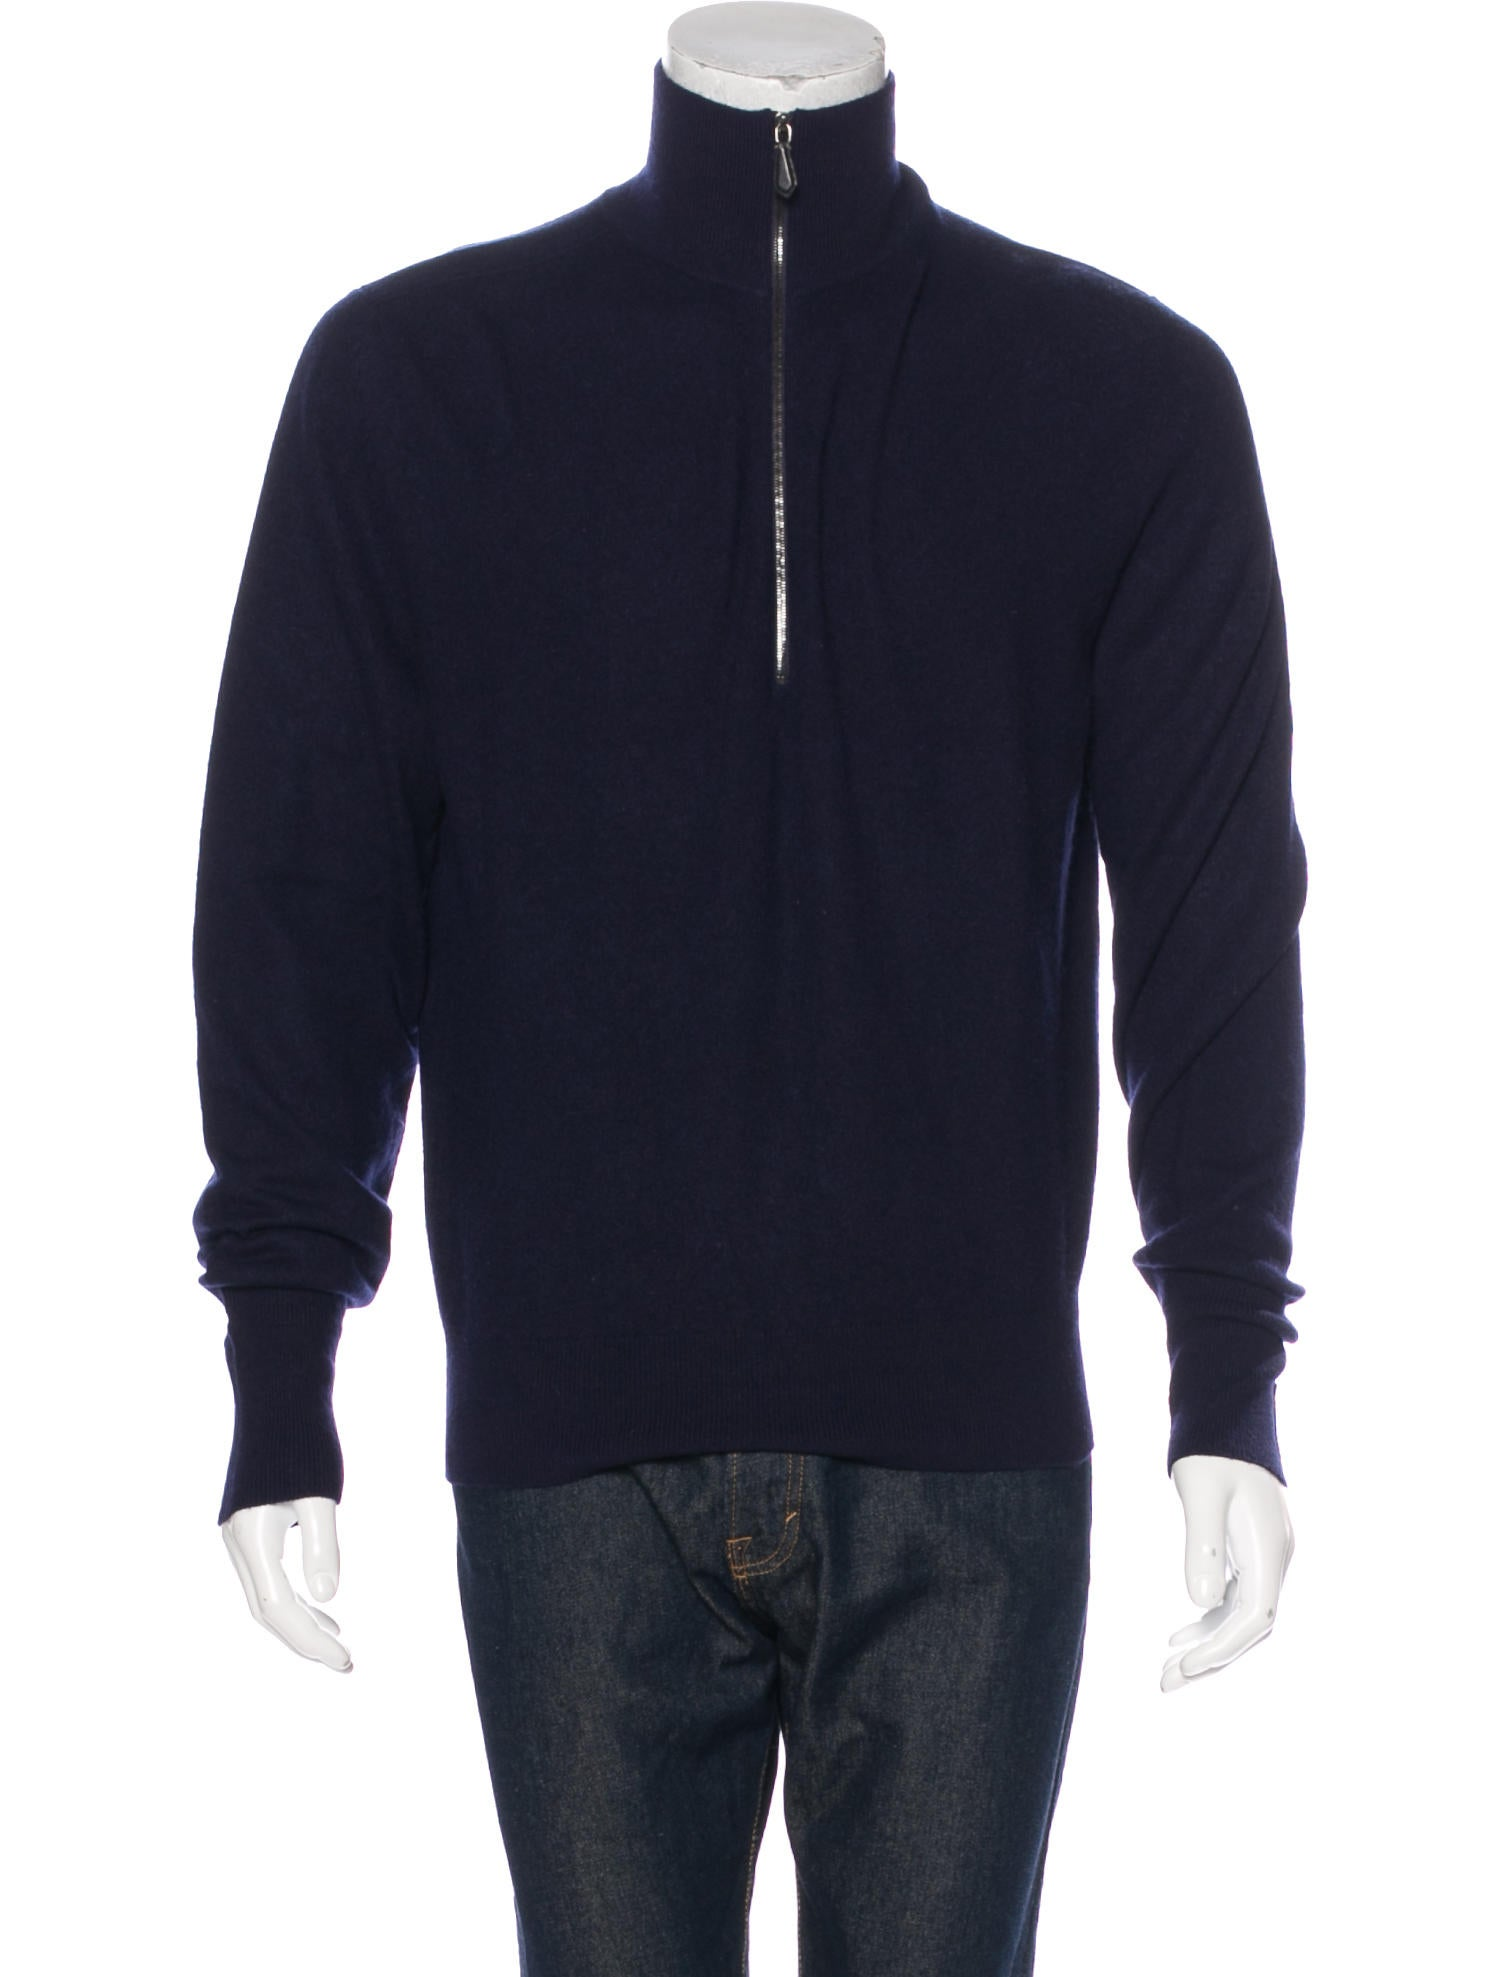 Tom Ford Cashmere Half-Zip Sweater - Clothing - TOM38312 | The RealReal